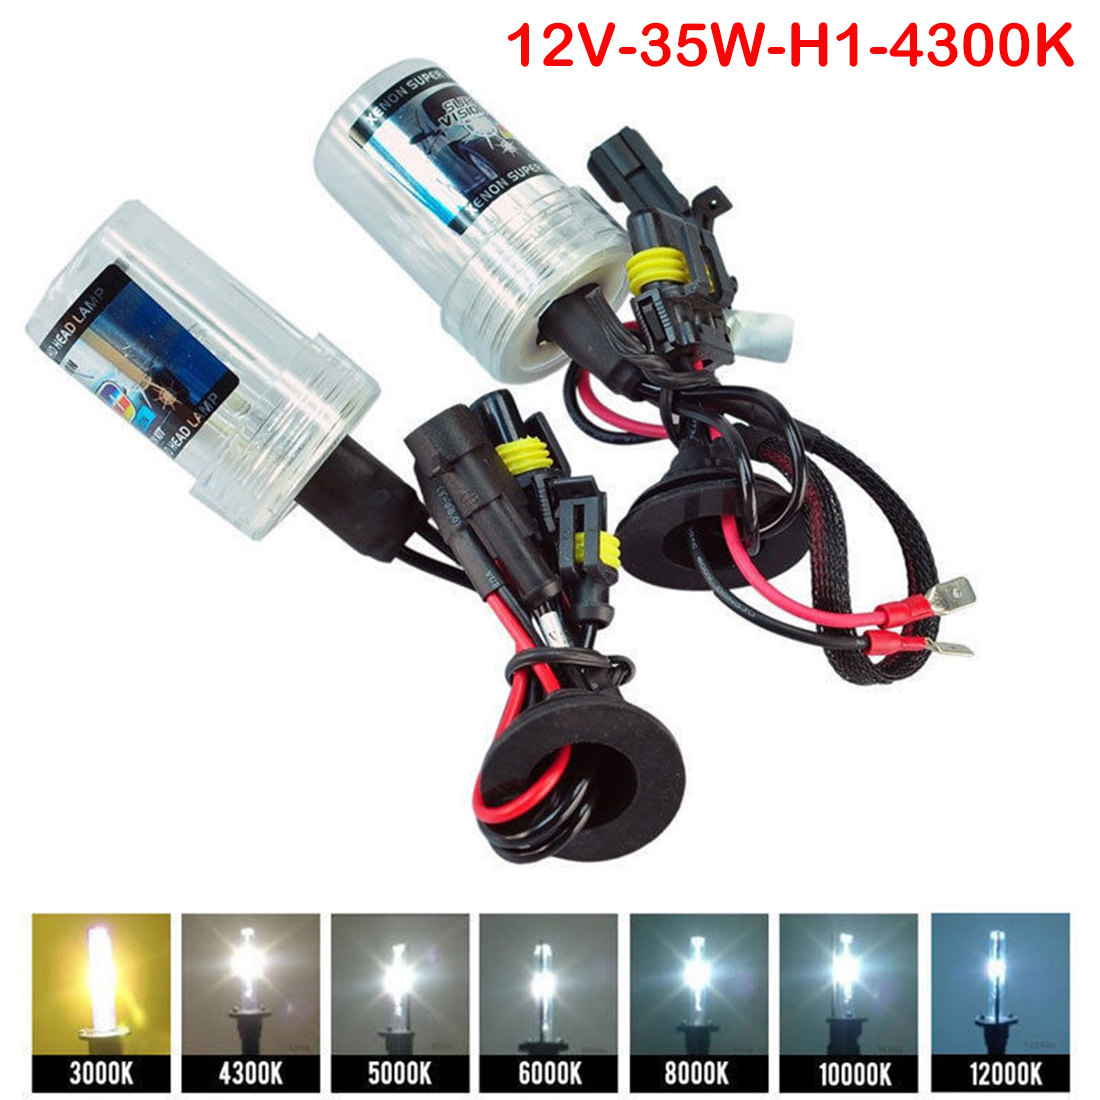 2pcs 35W Xenon HID Bulb Headlight Lamp Auto Car Head Light H1 H4 H11 4300K 5000K 6000K 8000K Car Auto Replacement